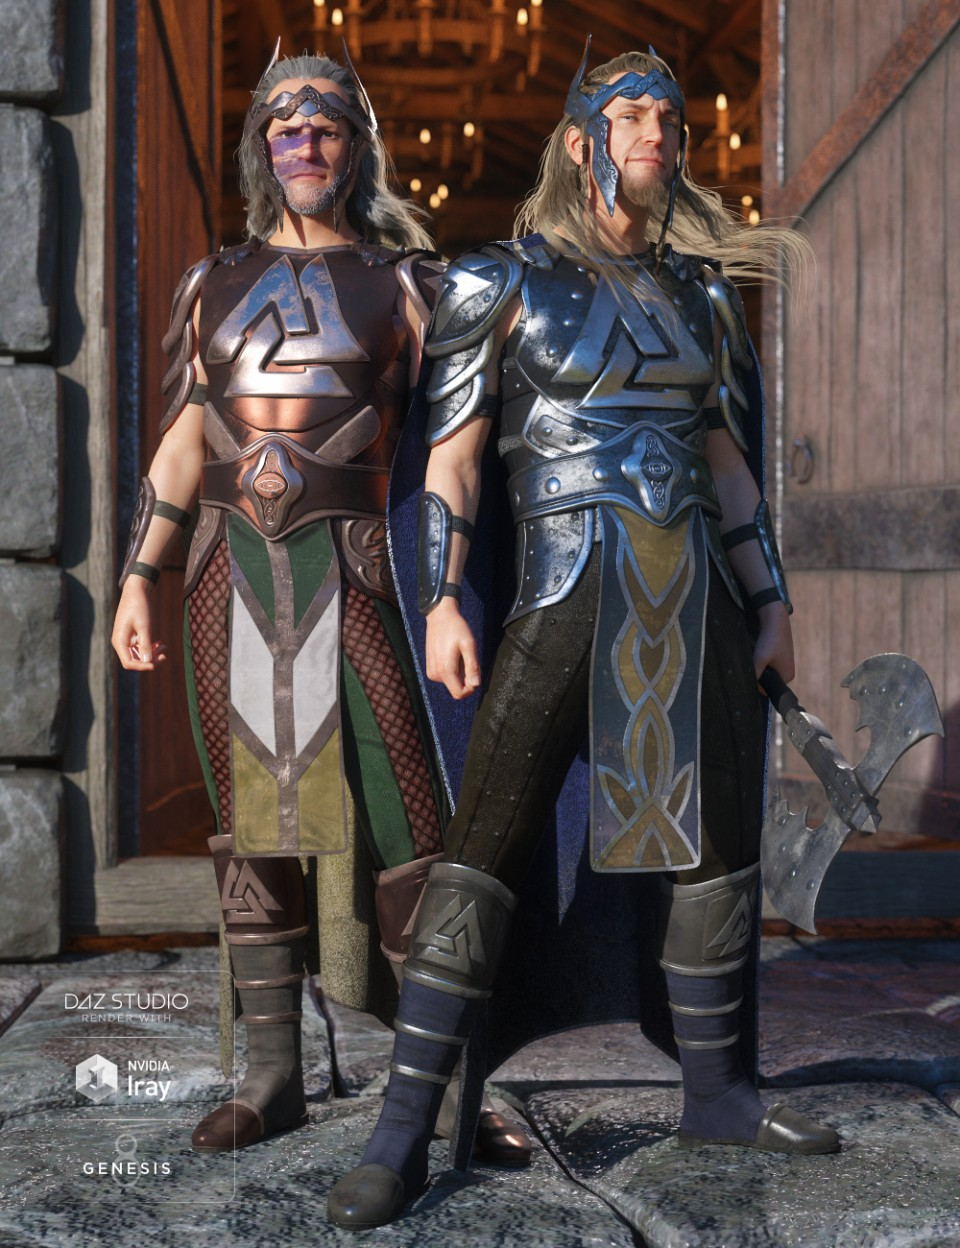 dForce Warrior King Outfit Textures